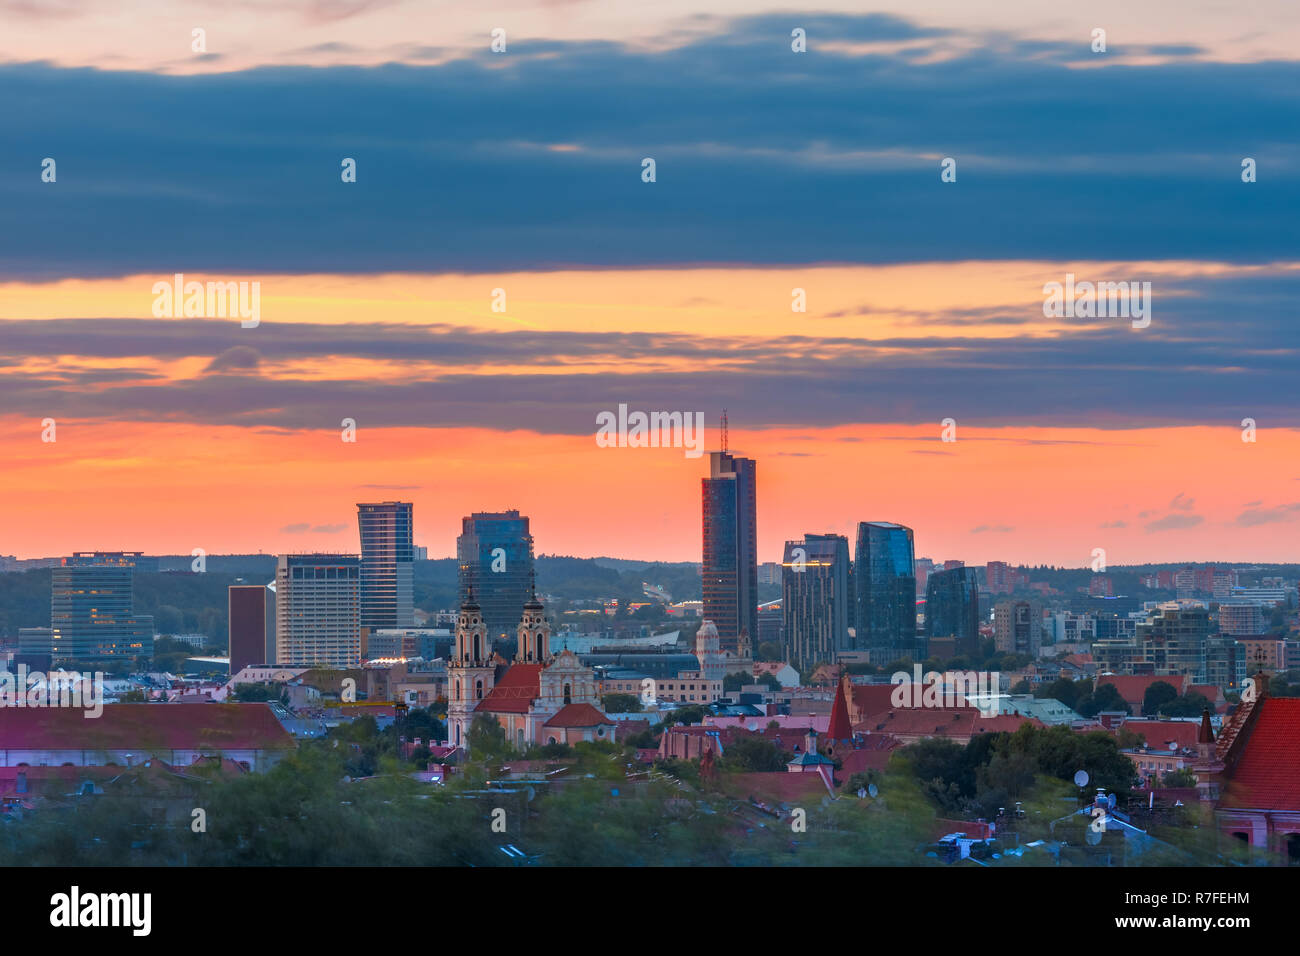 Old town and skyscrapers, Vilnius, Lithuania Stock Photo